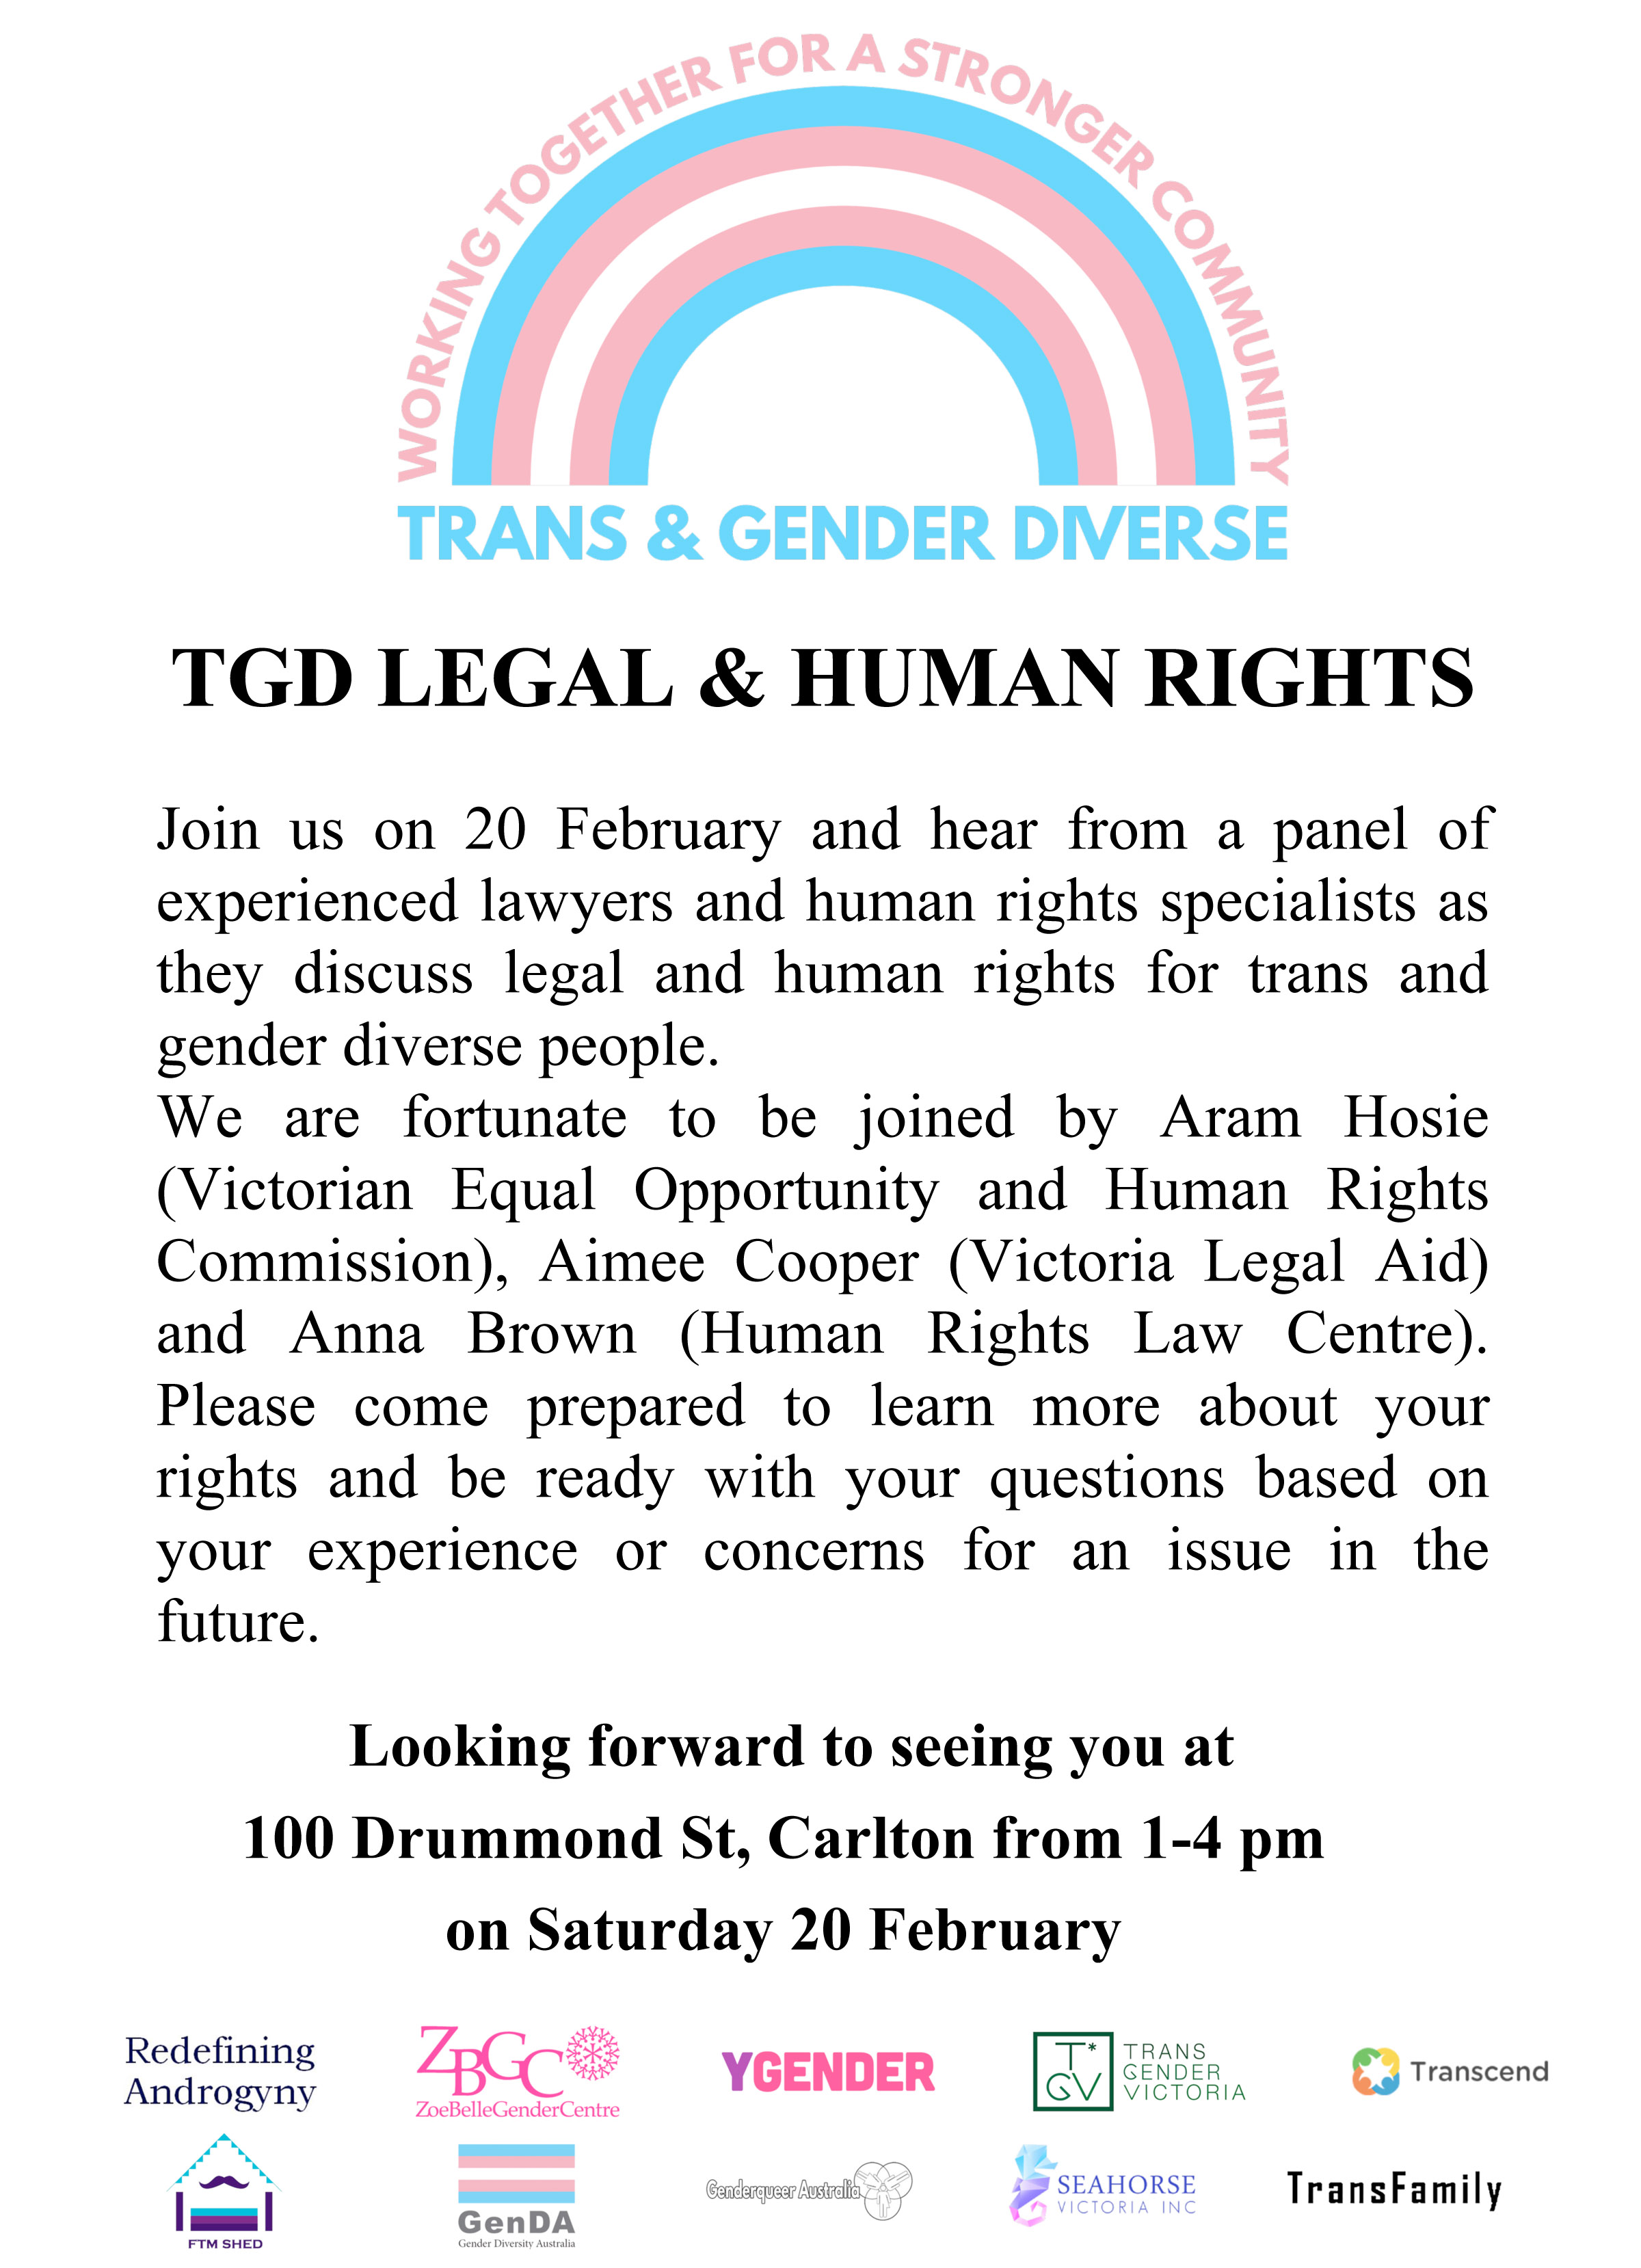 Microsoft Word - TGD legal and human rights panel.doc